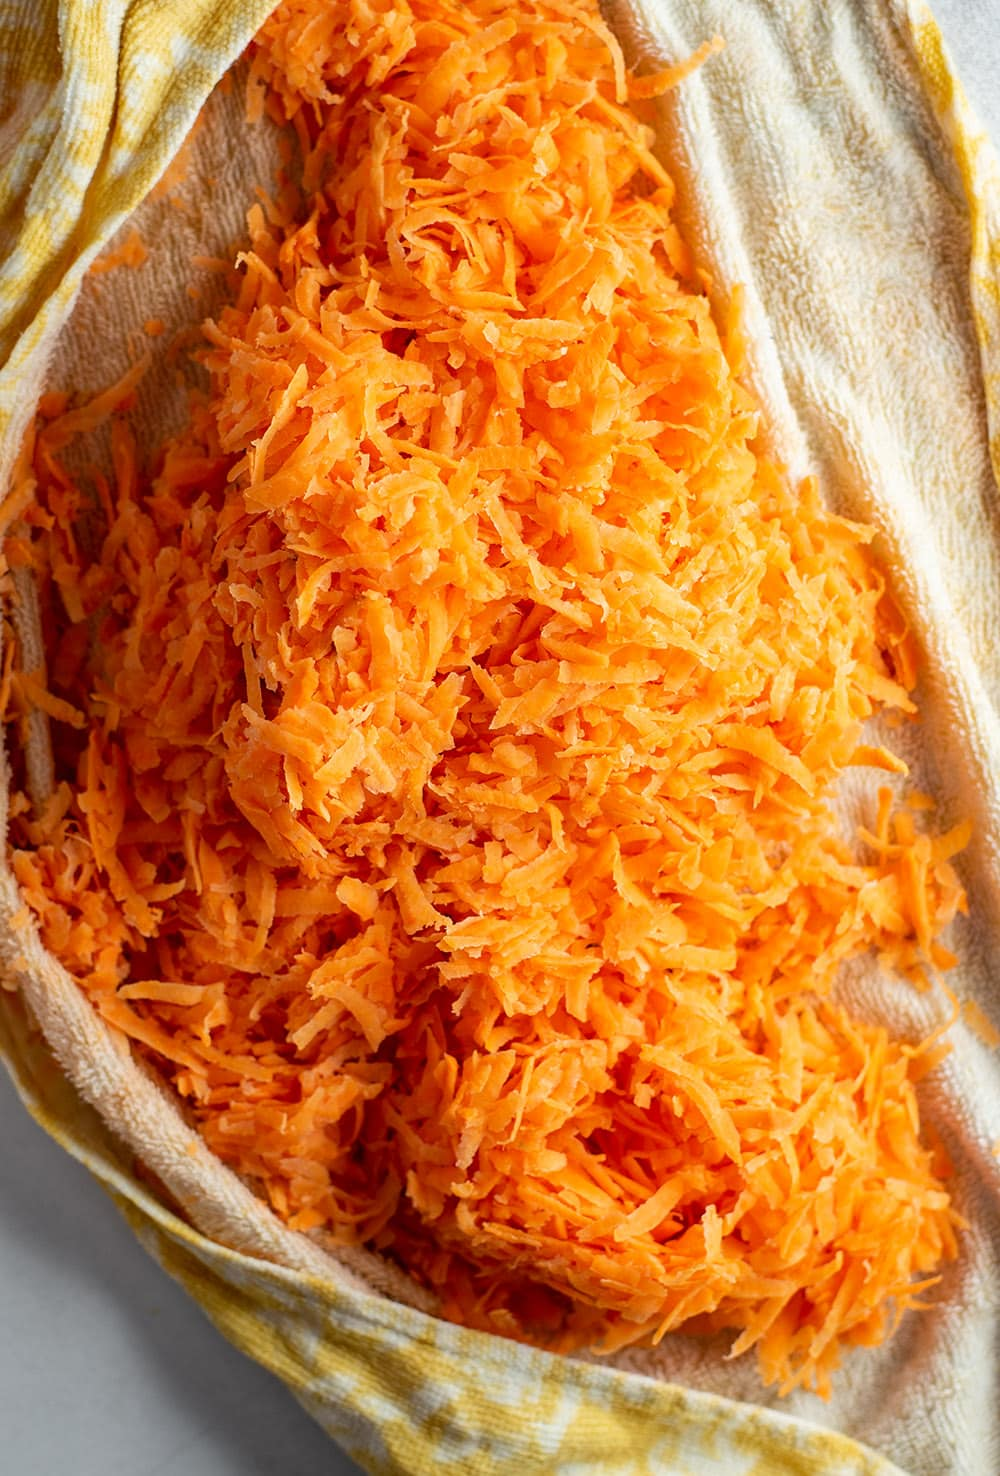 Shredded sweet potatoes